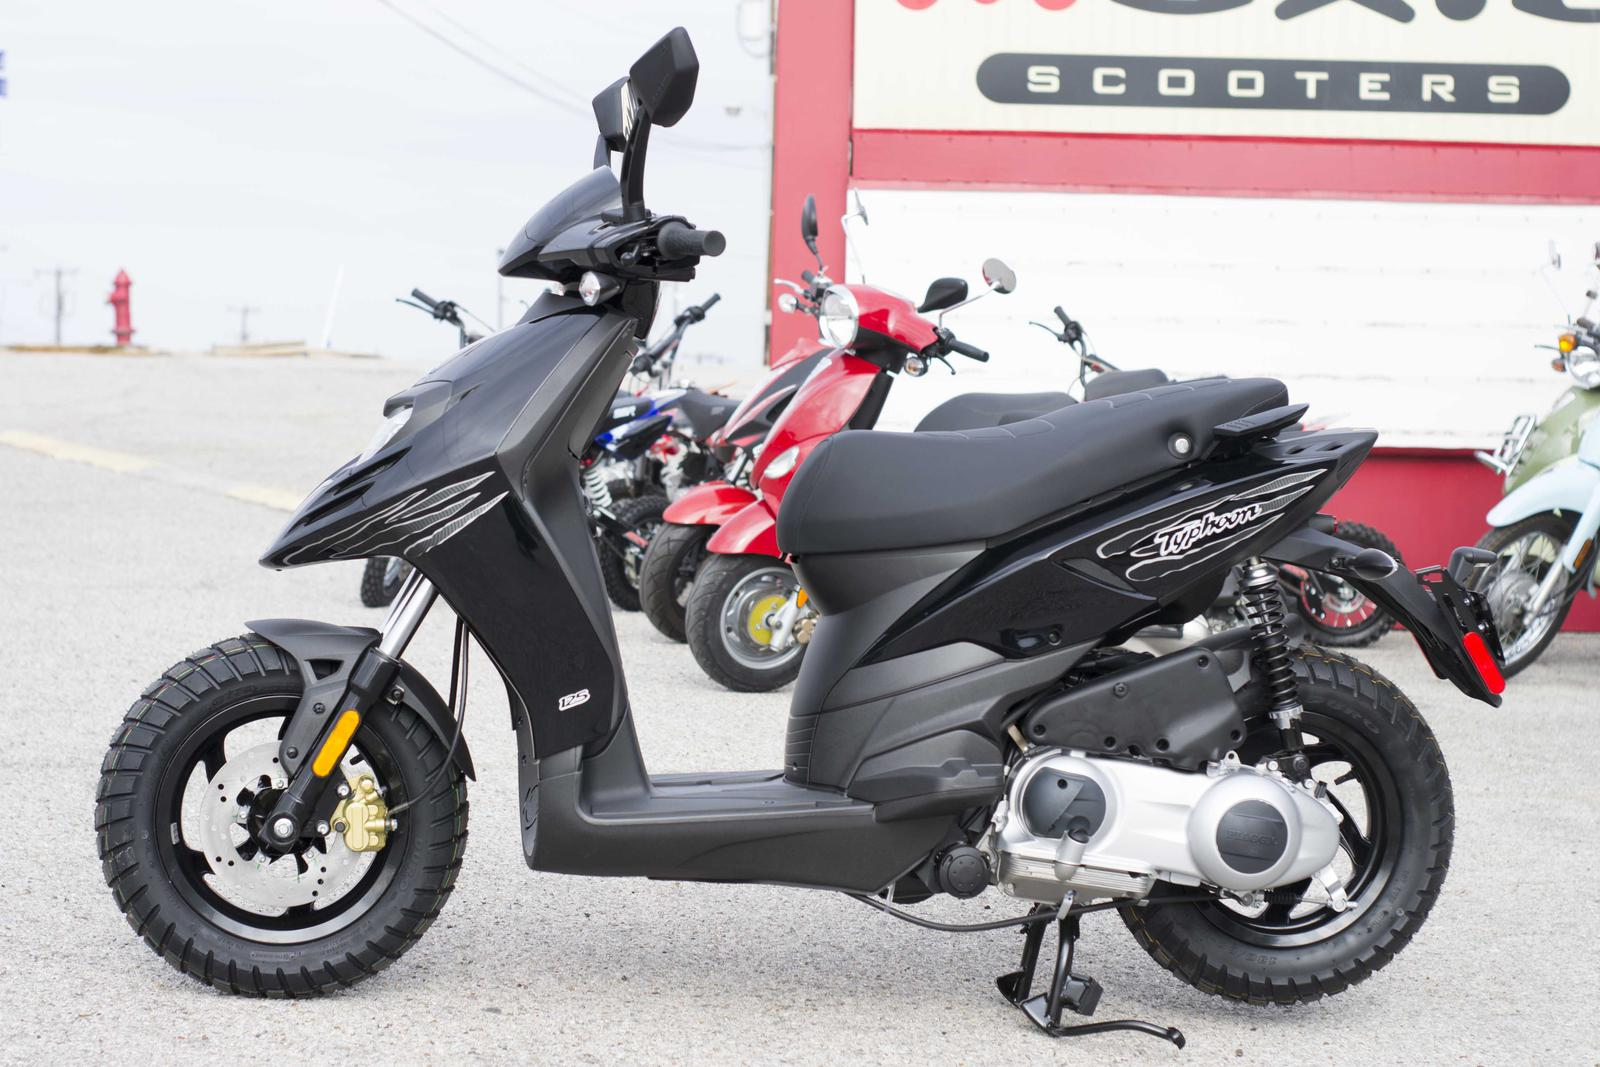 2018 Piaggio Typhoon 125 2018 Black for sale in Colleyville, TX ...